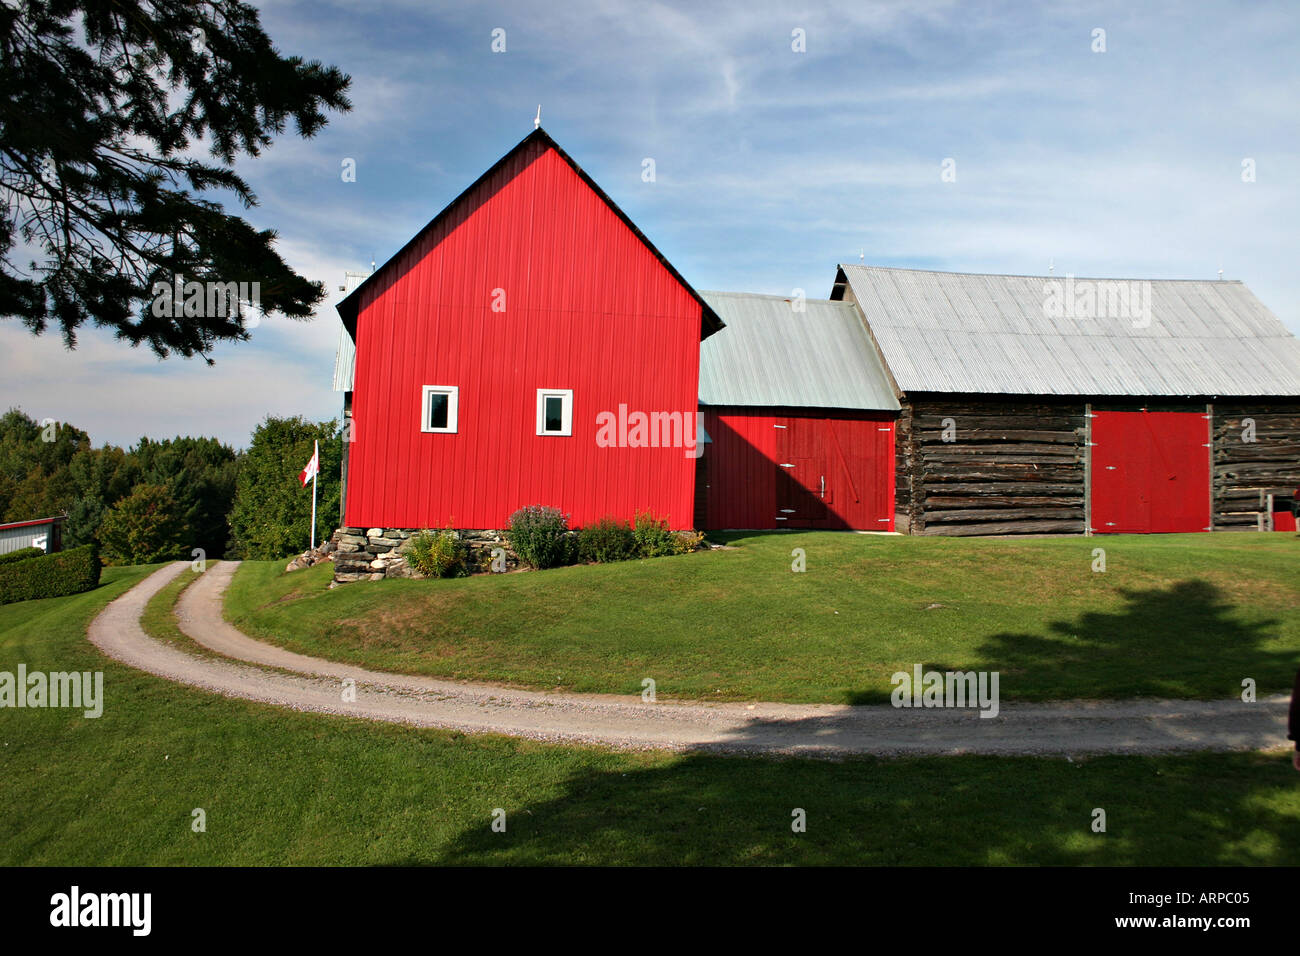 Red Barn A newer red barn joined to an older log barn A rutted laneway passes in front - Stock Image